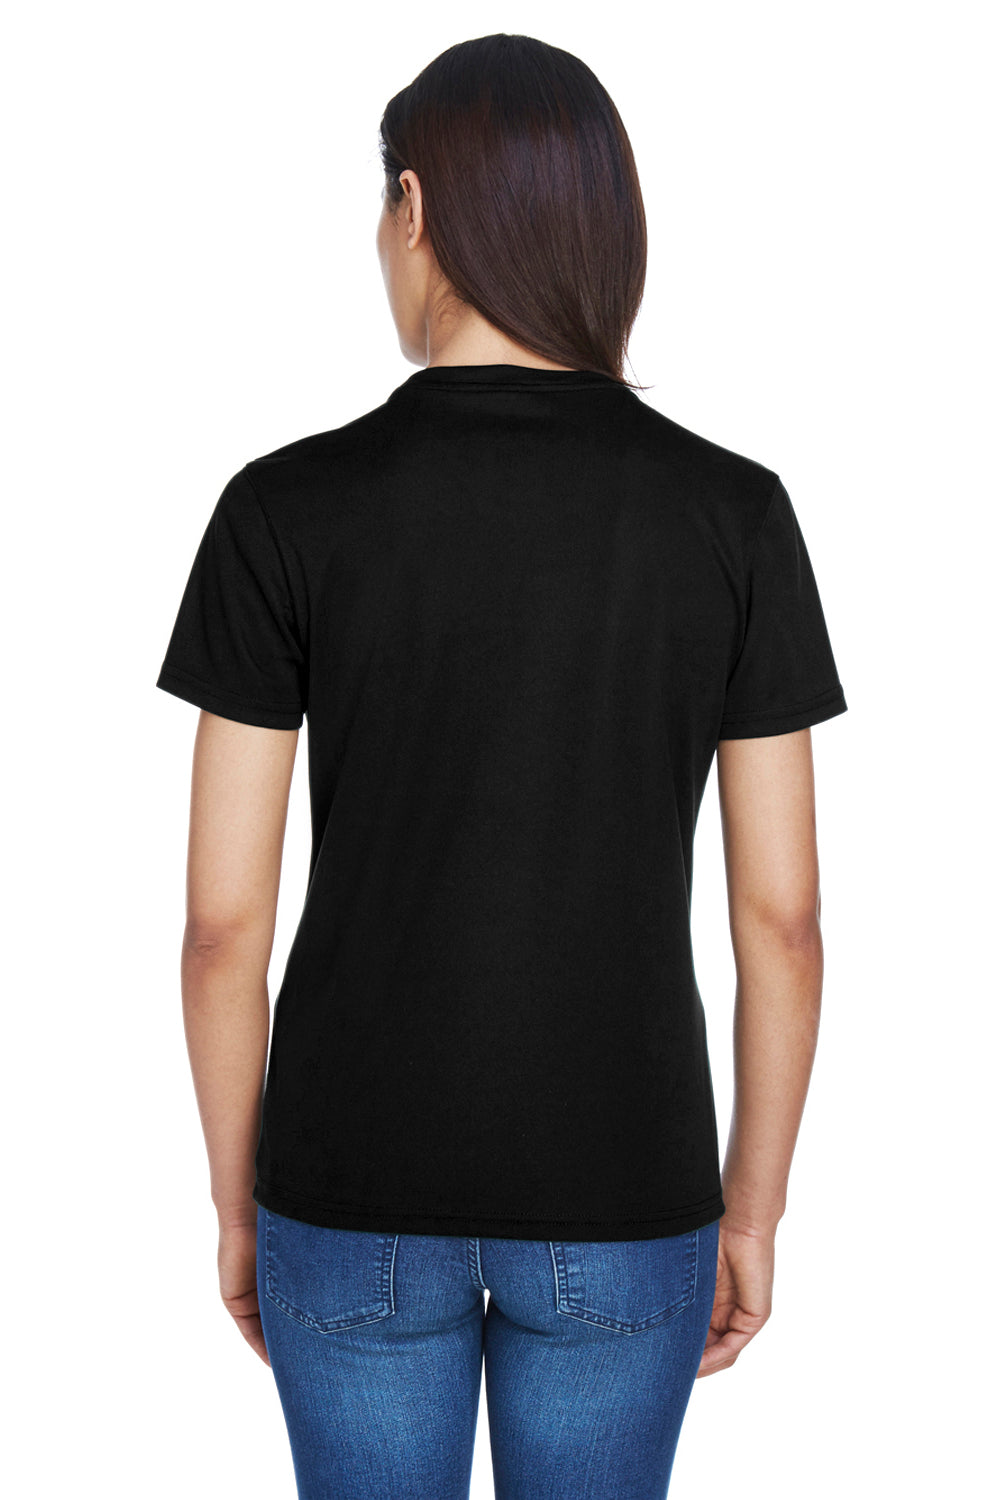 Core 365 78182 Womens Pace Performance Moisture Wicking Short Sleeve Crewneck T-Shirt Black Back